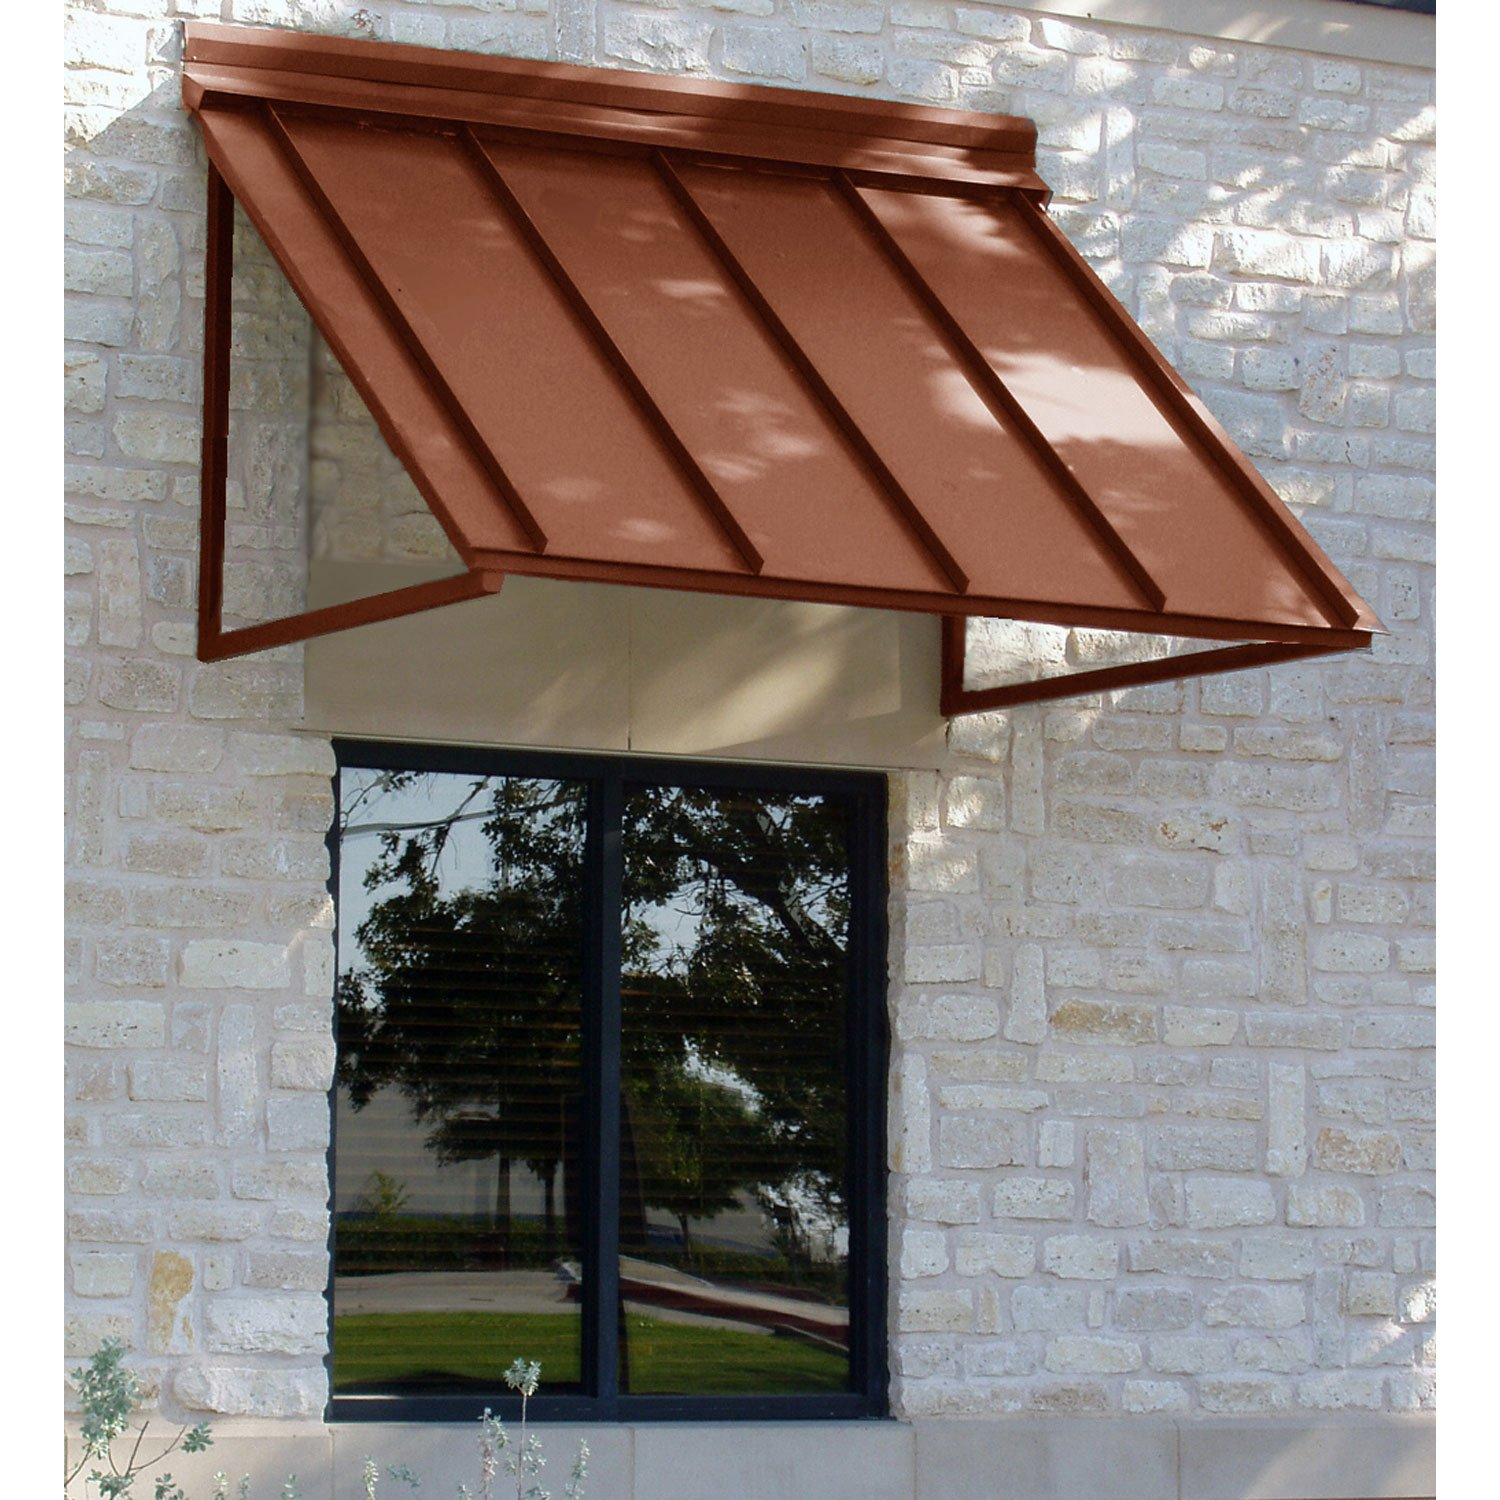 kit tipzred copper metal cost club awning awnings window roof custom over doors bay